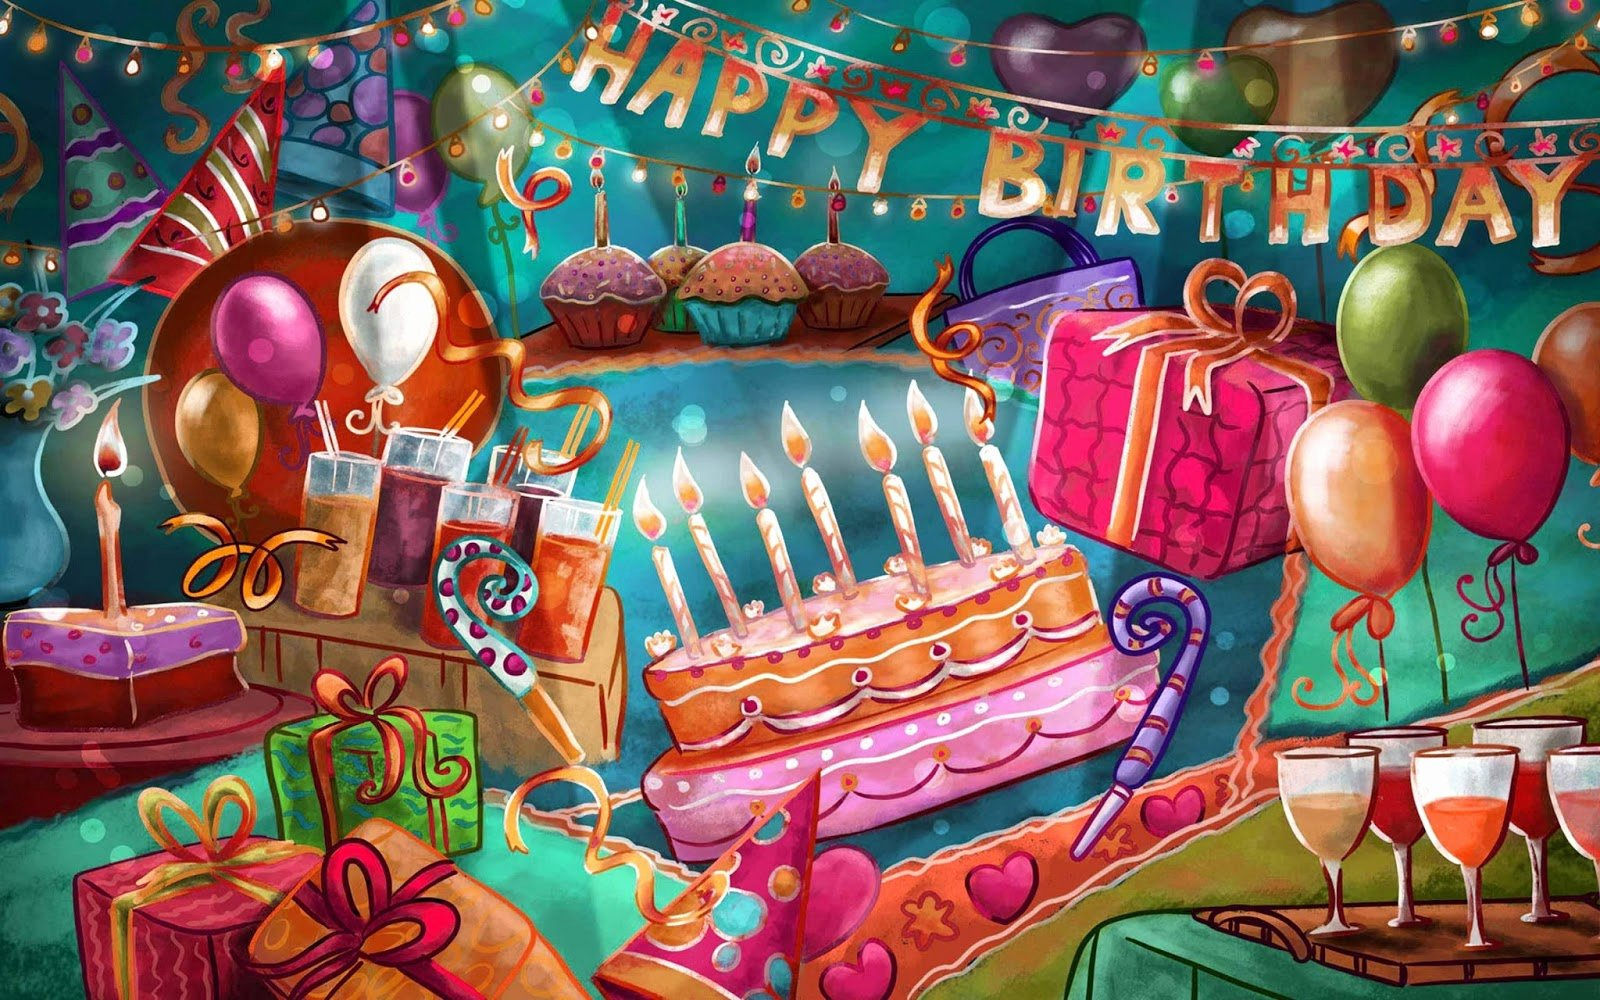 Happy Bday Wallpapers Free Beautiful Happy Birthday Greetings Wishes High Resolution Hd 2013